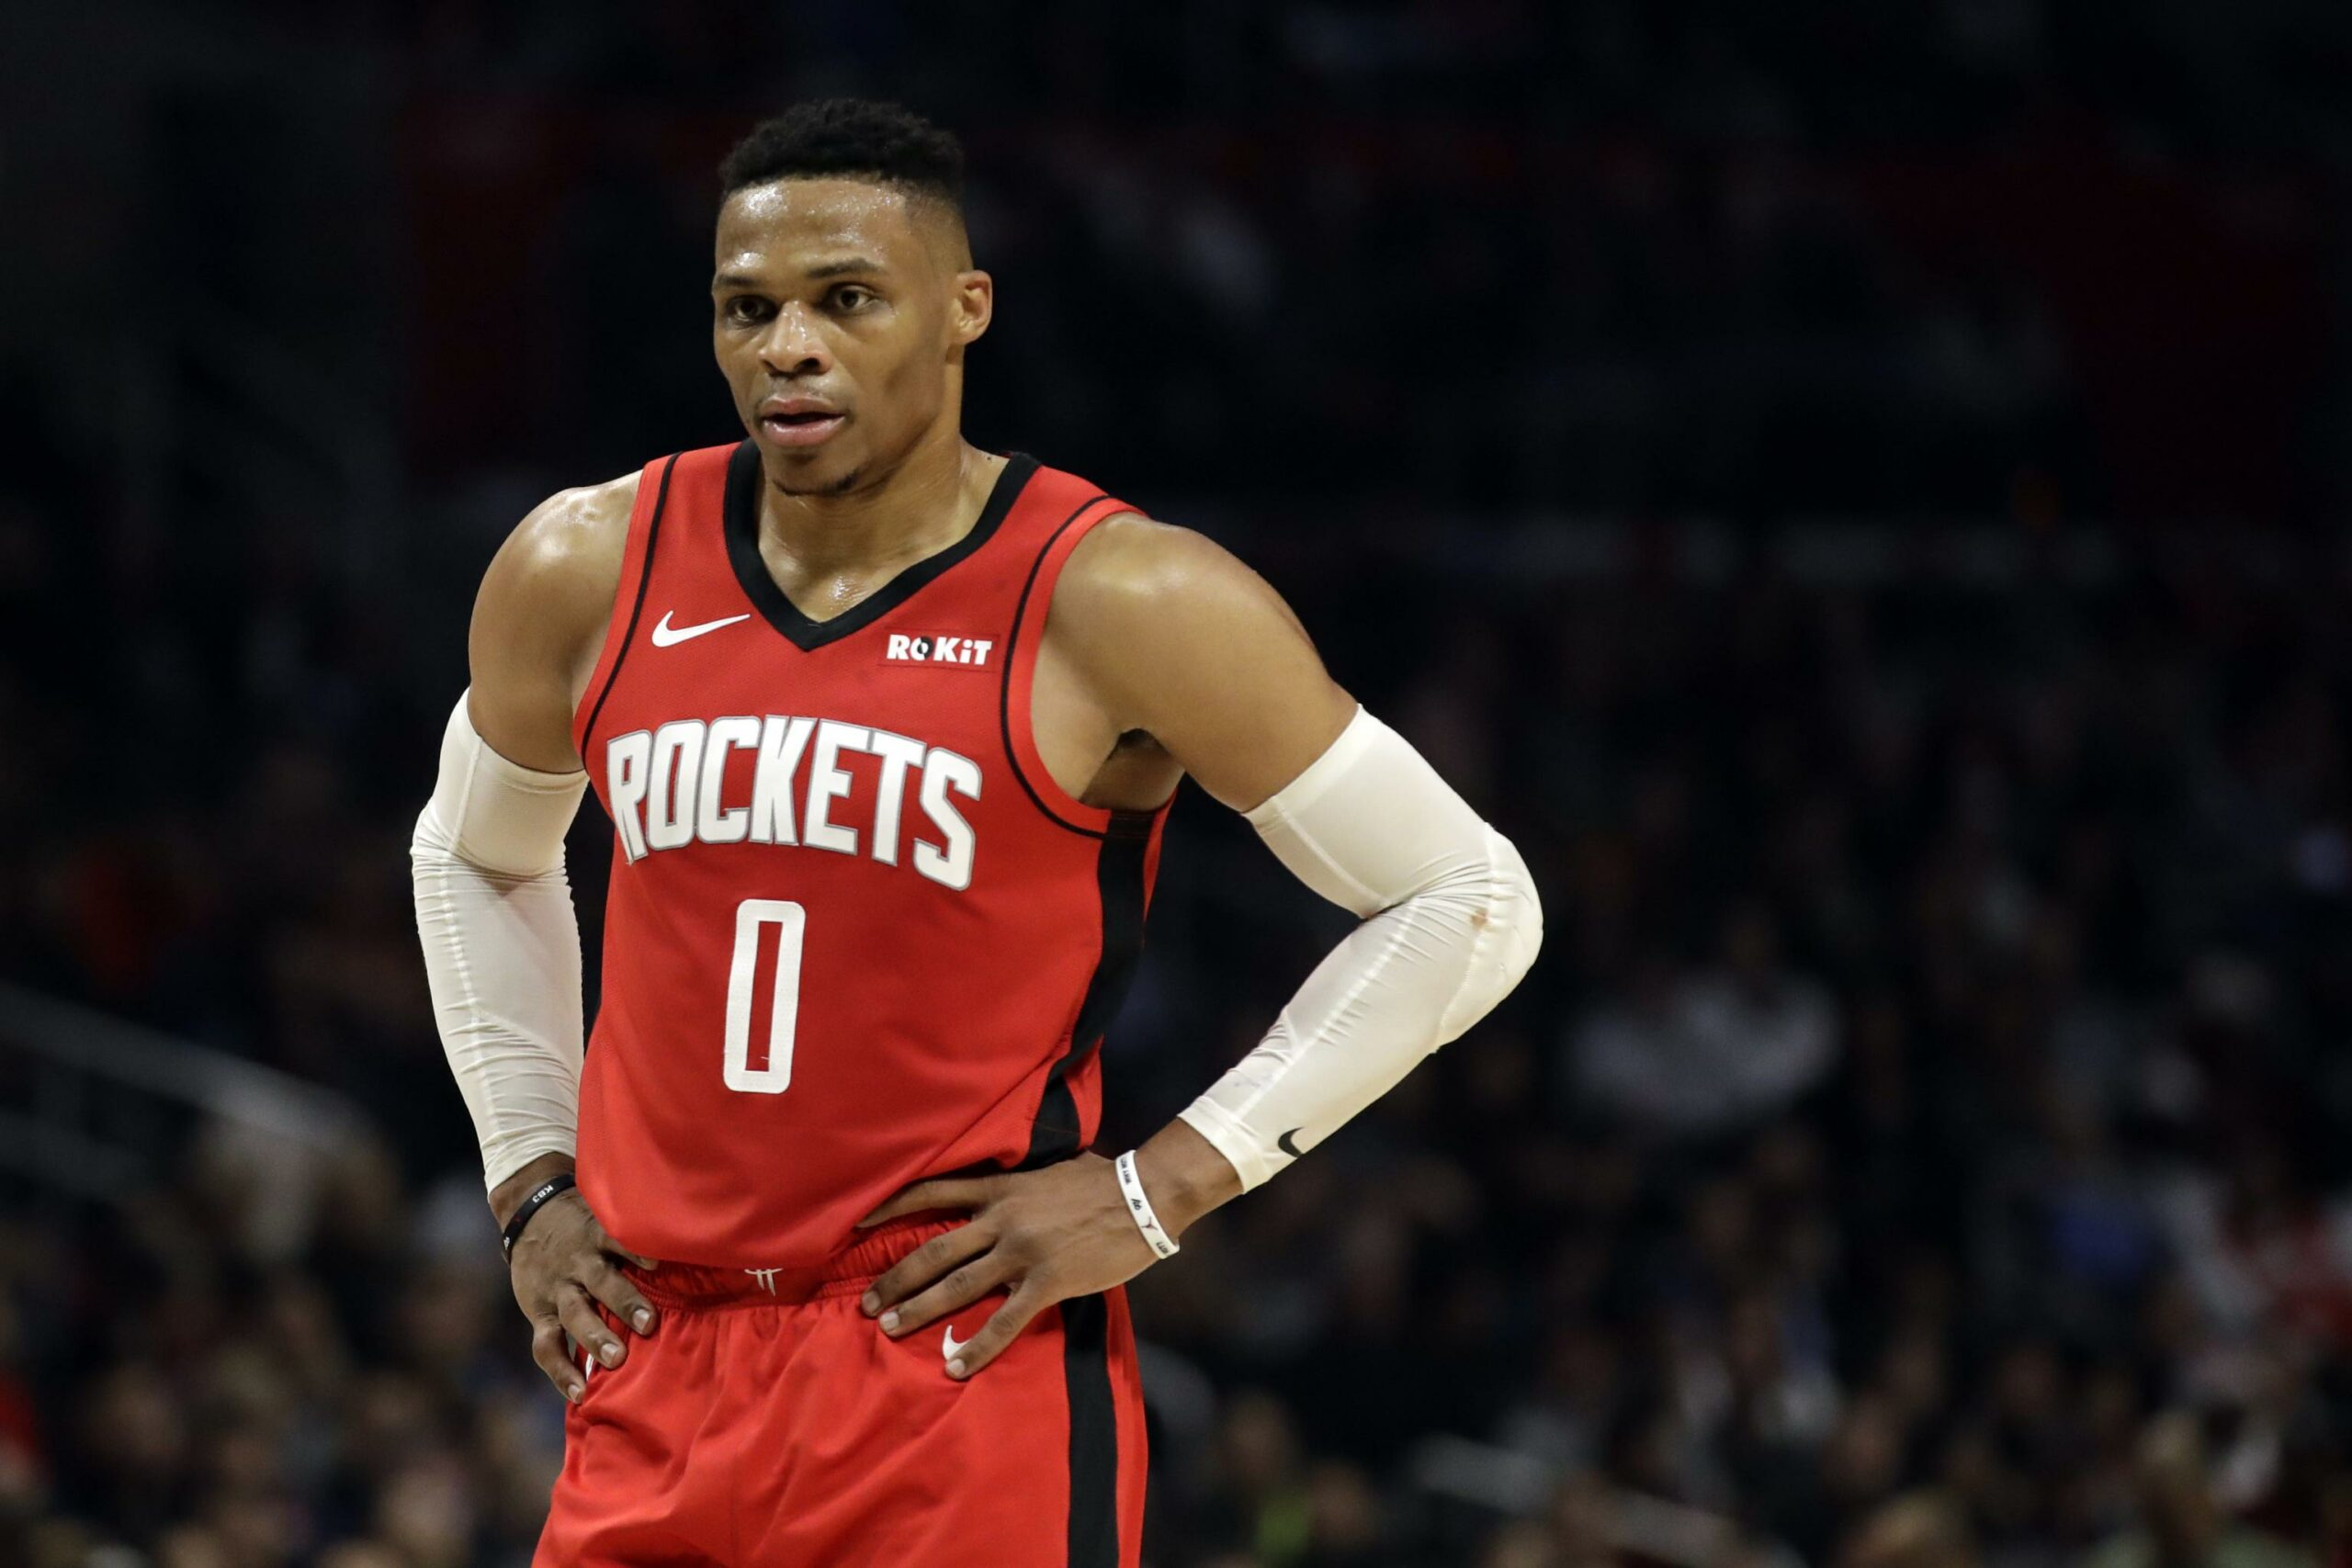 Rockets cambian a Russell Westbrook a Wizards por John Wall